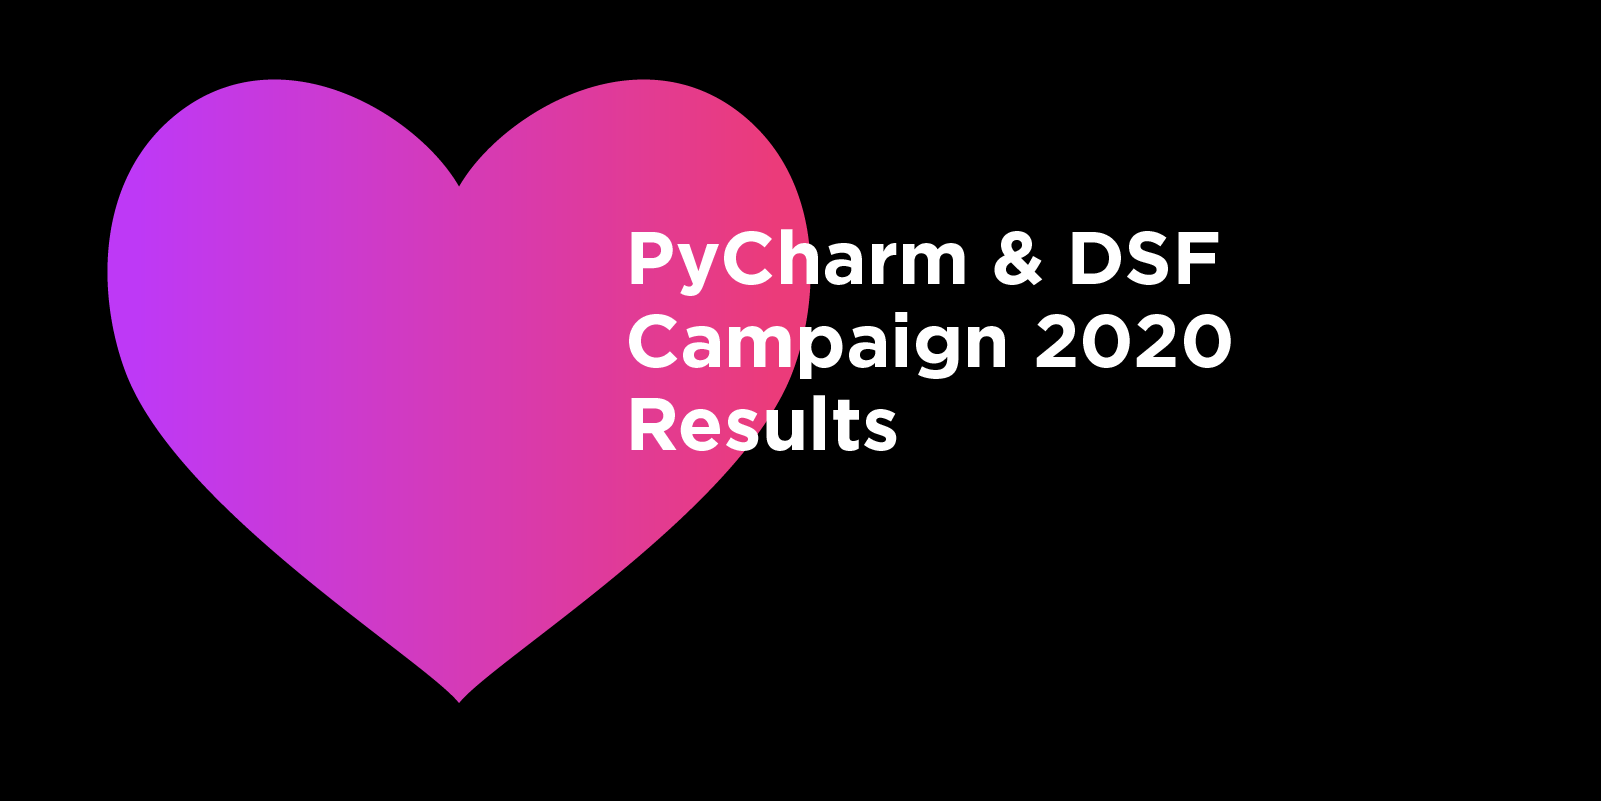 PyCharm and DSF campaign results